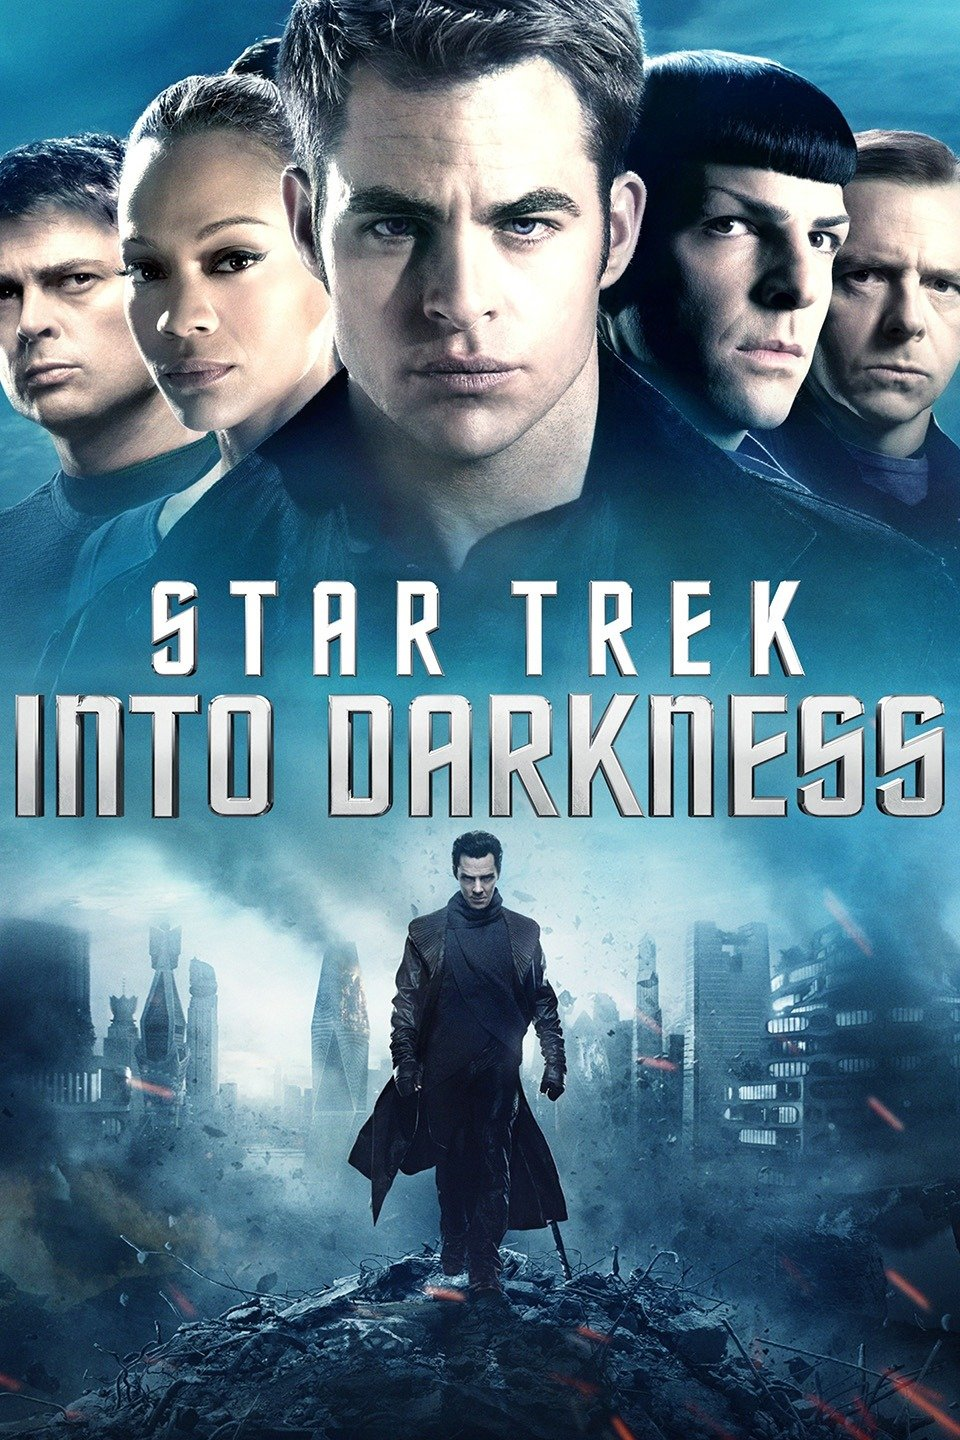 Star Trek: Into Darkness (2013) Full Movie In Hindi-English-Tamil-Telugu (Multi Audio) Bluray 480p|720p|1080p